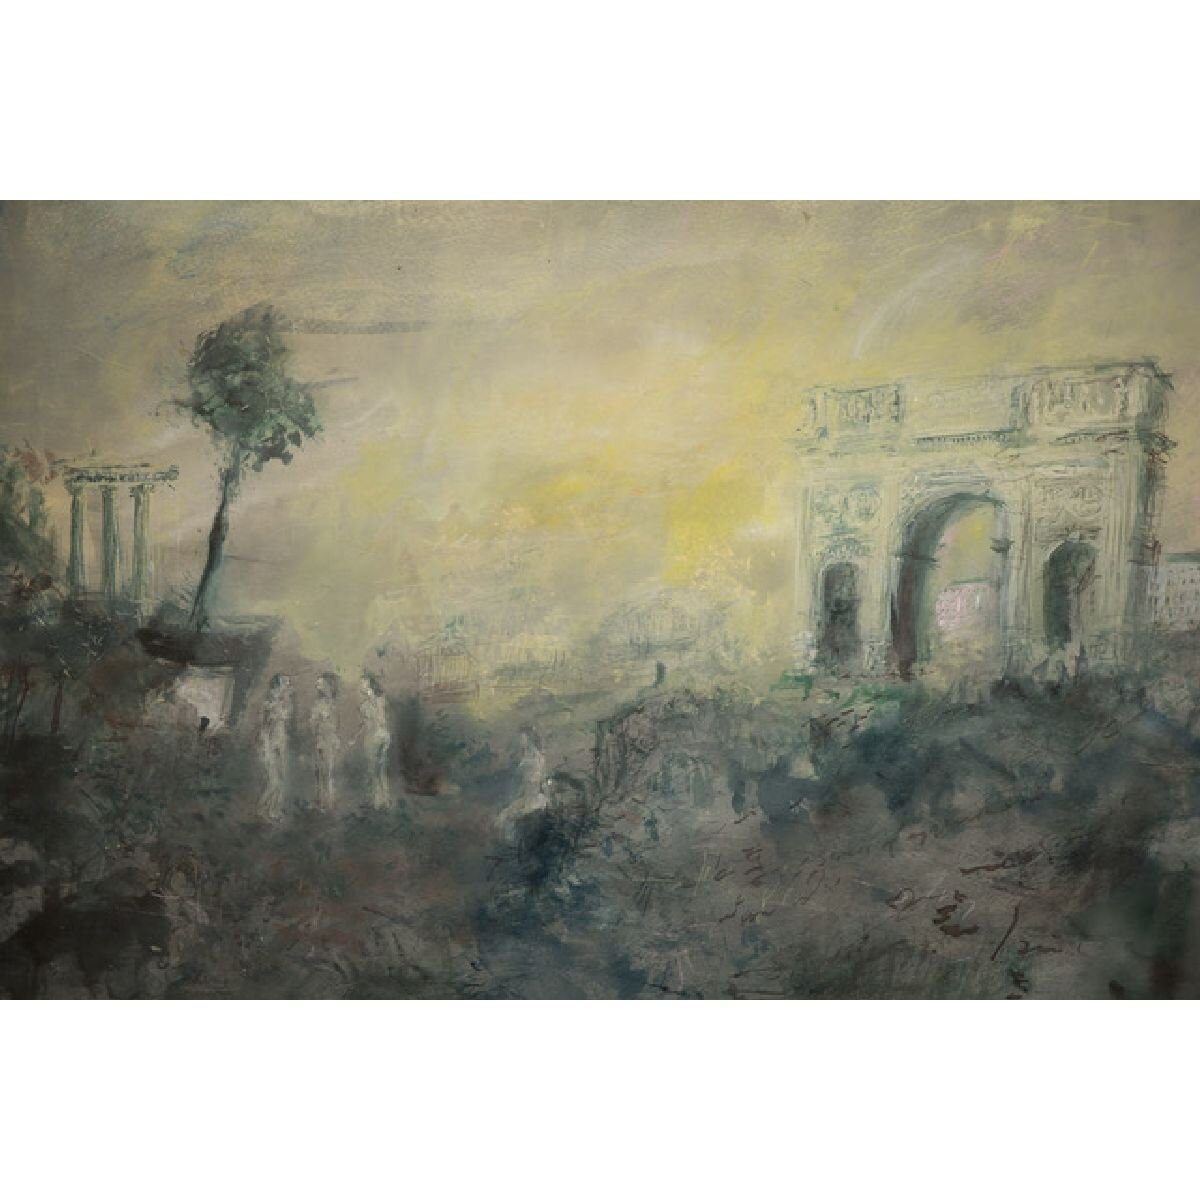 Arch of Constantine by Stephen Todd